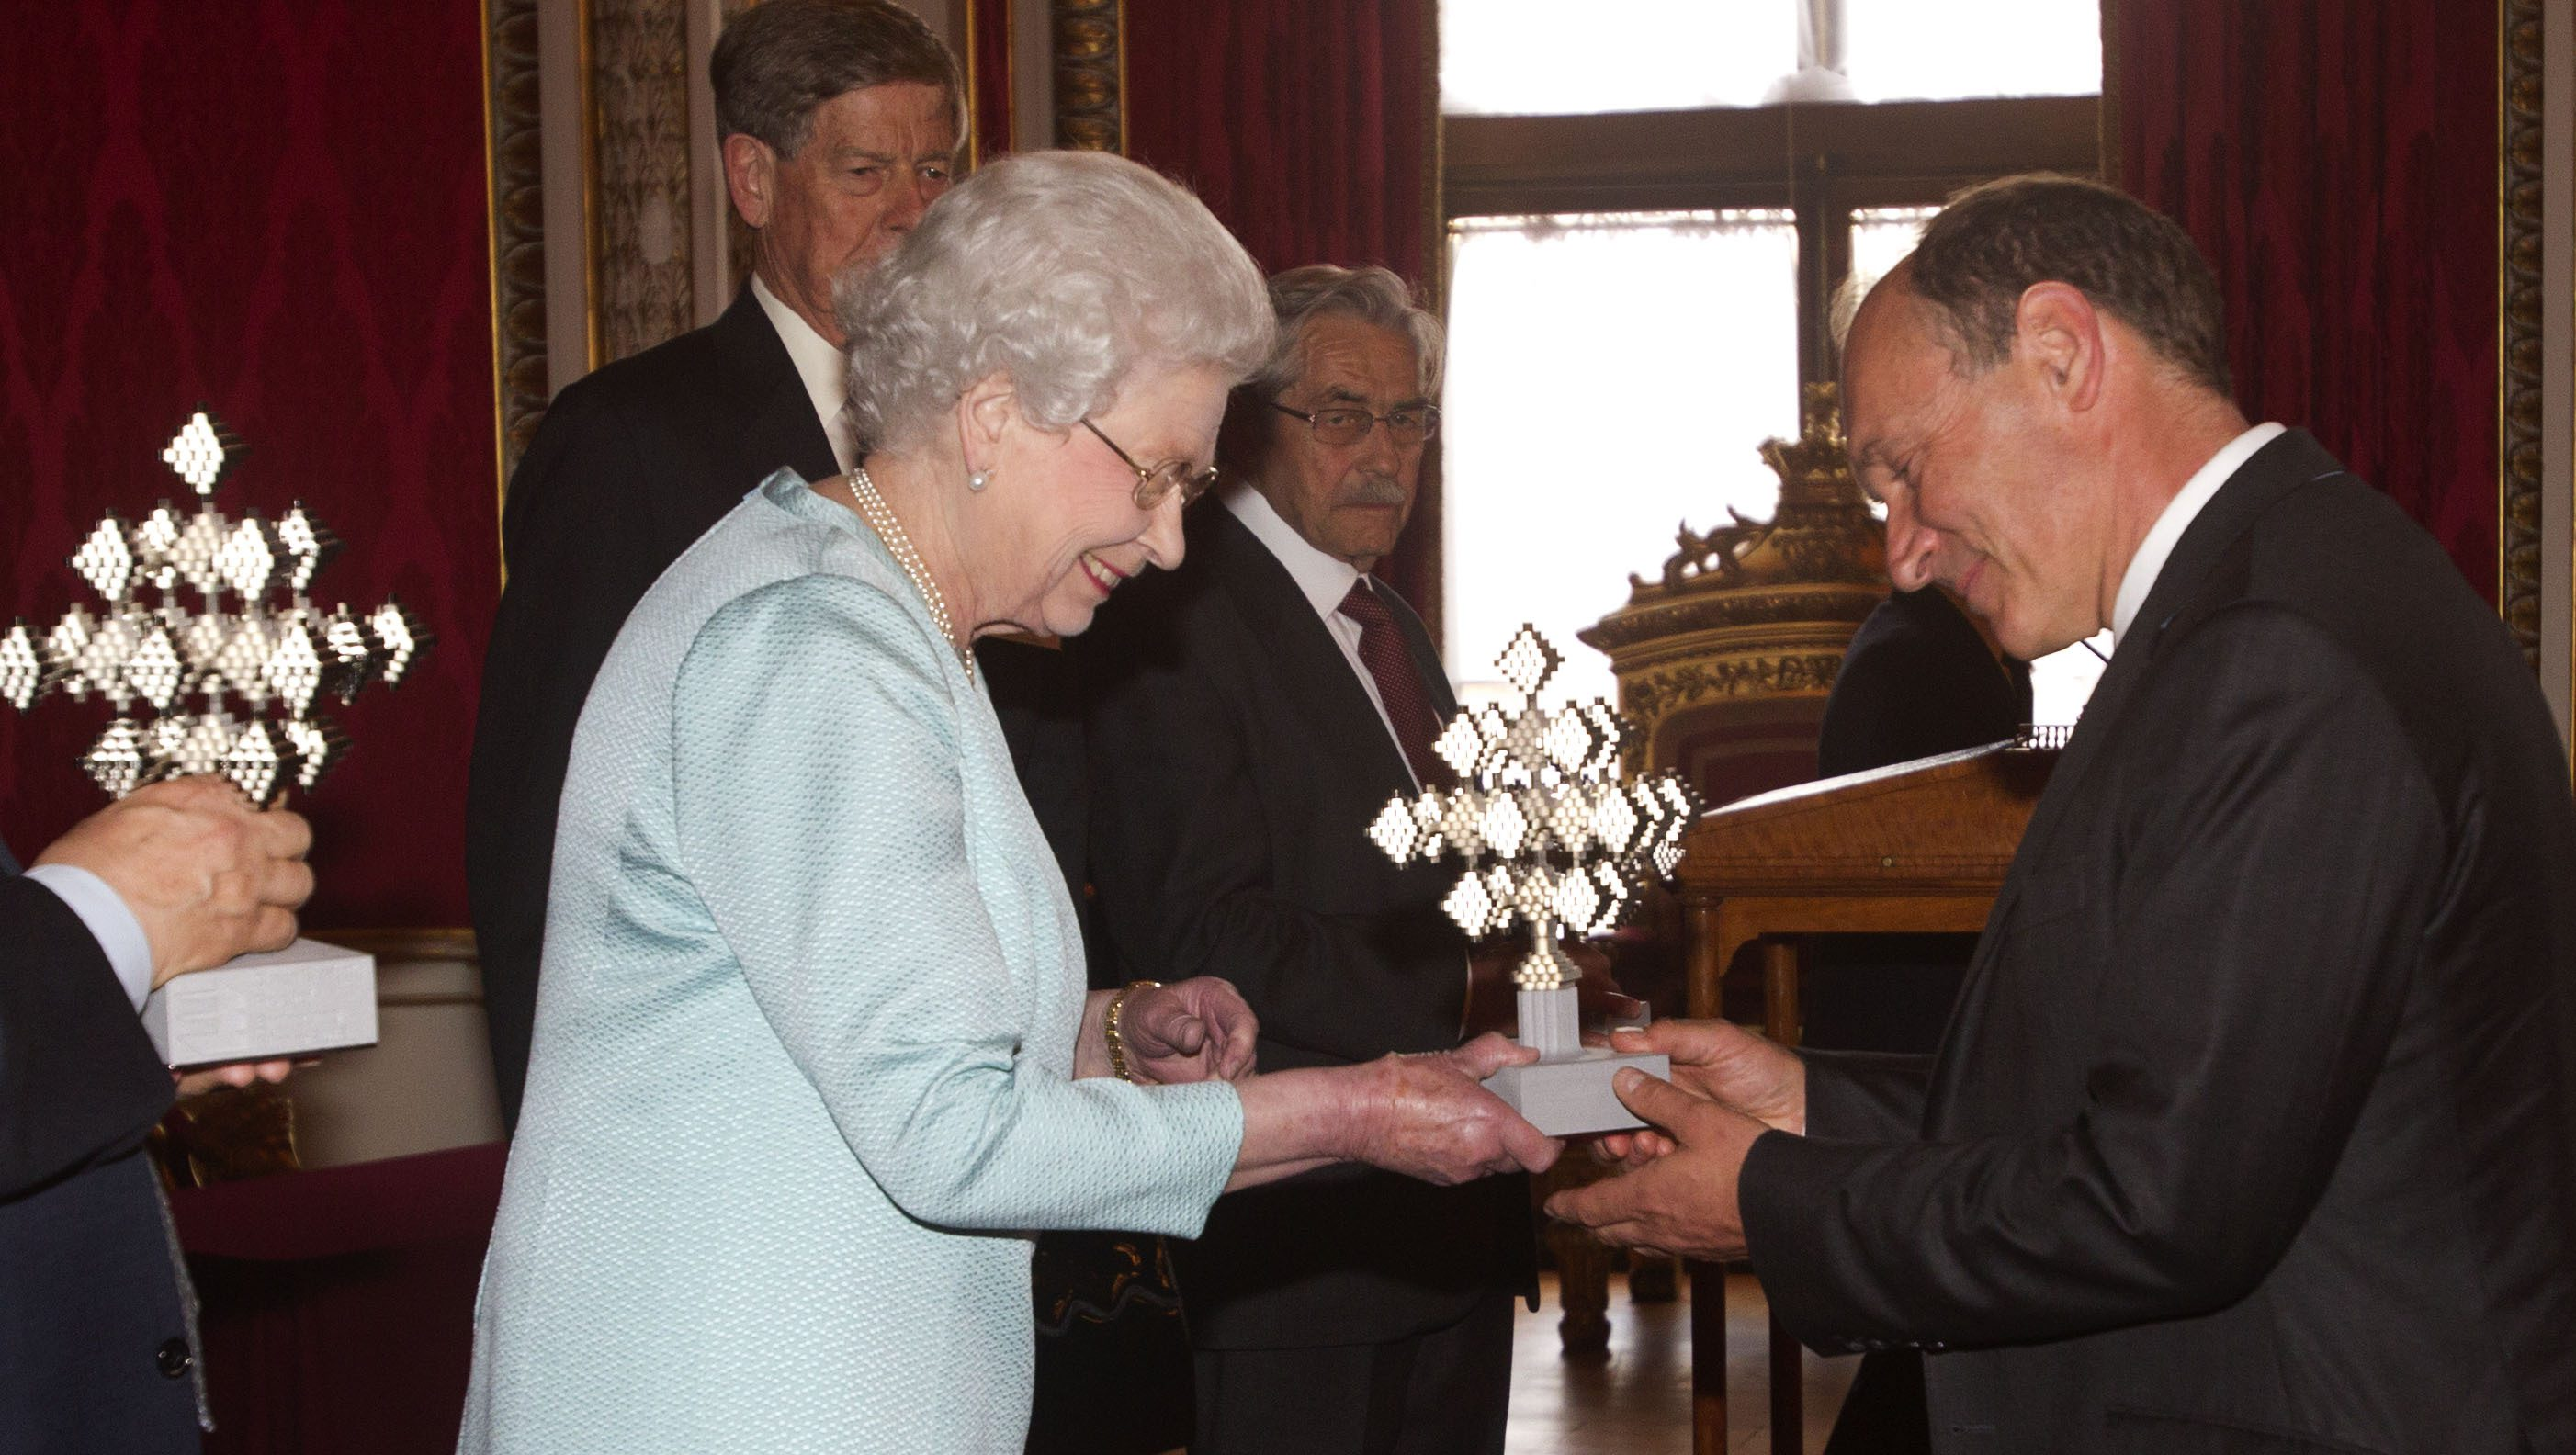 Tim Berners-Lee, a British computer scientist best known as the inventor of the World Wide Web,  receives the inaugural Queen Elizabeth Prize for Engineering, awarded jointly with Louis Pouzin, Robert Kahn, Vint Cerf, and  Marc Andreessen,  from Queen Elizabeth II at a reception at Buckingham Palace, London, Tuesday June 25, 2013. The one million pound ($1.54 million) award is a global engineering prize that rewards and celebrates individual  or team  responsible for a ground-breaking innovation in engineering which has been of global benefit to humanity (AP Photo/ Lewis Whyld, Pool)